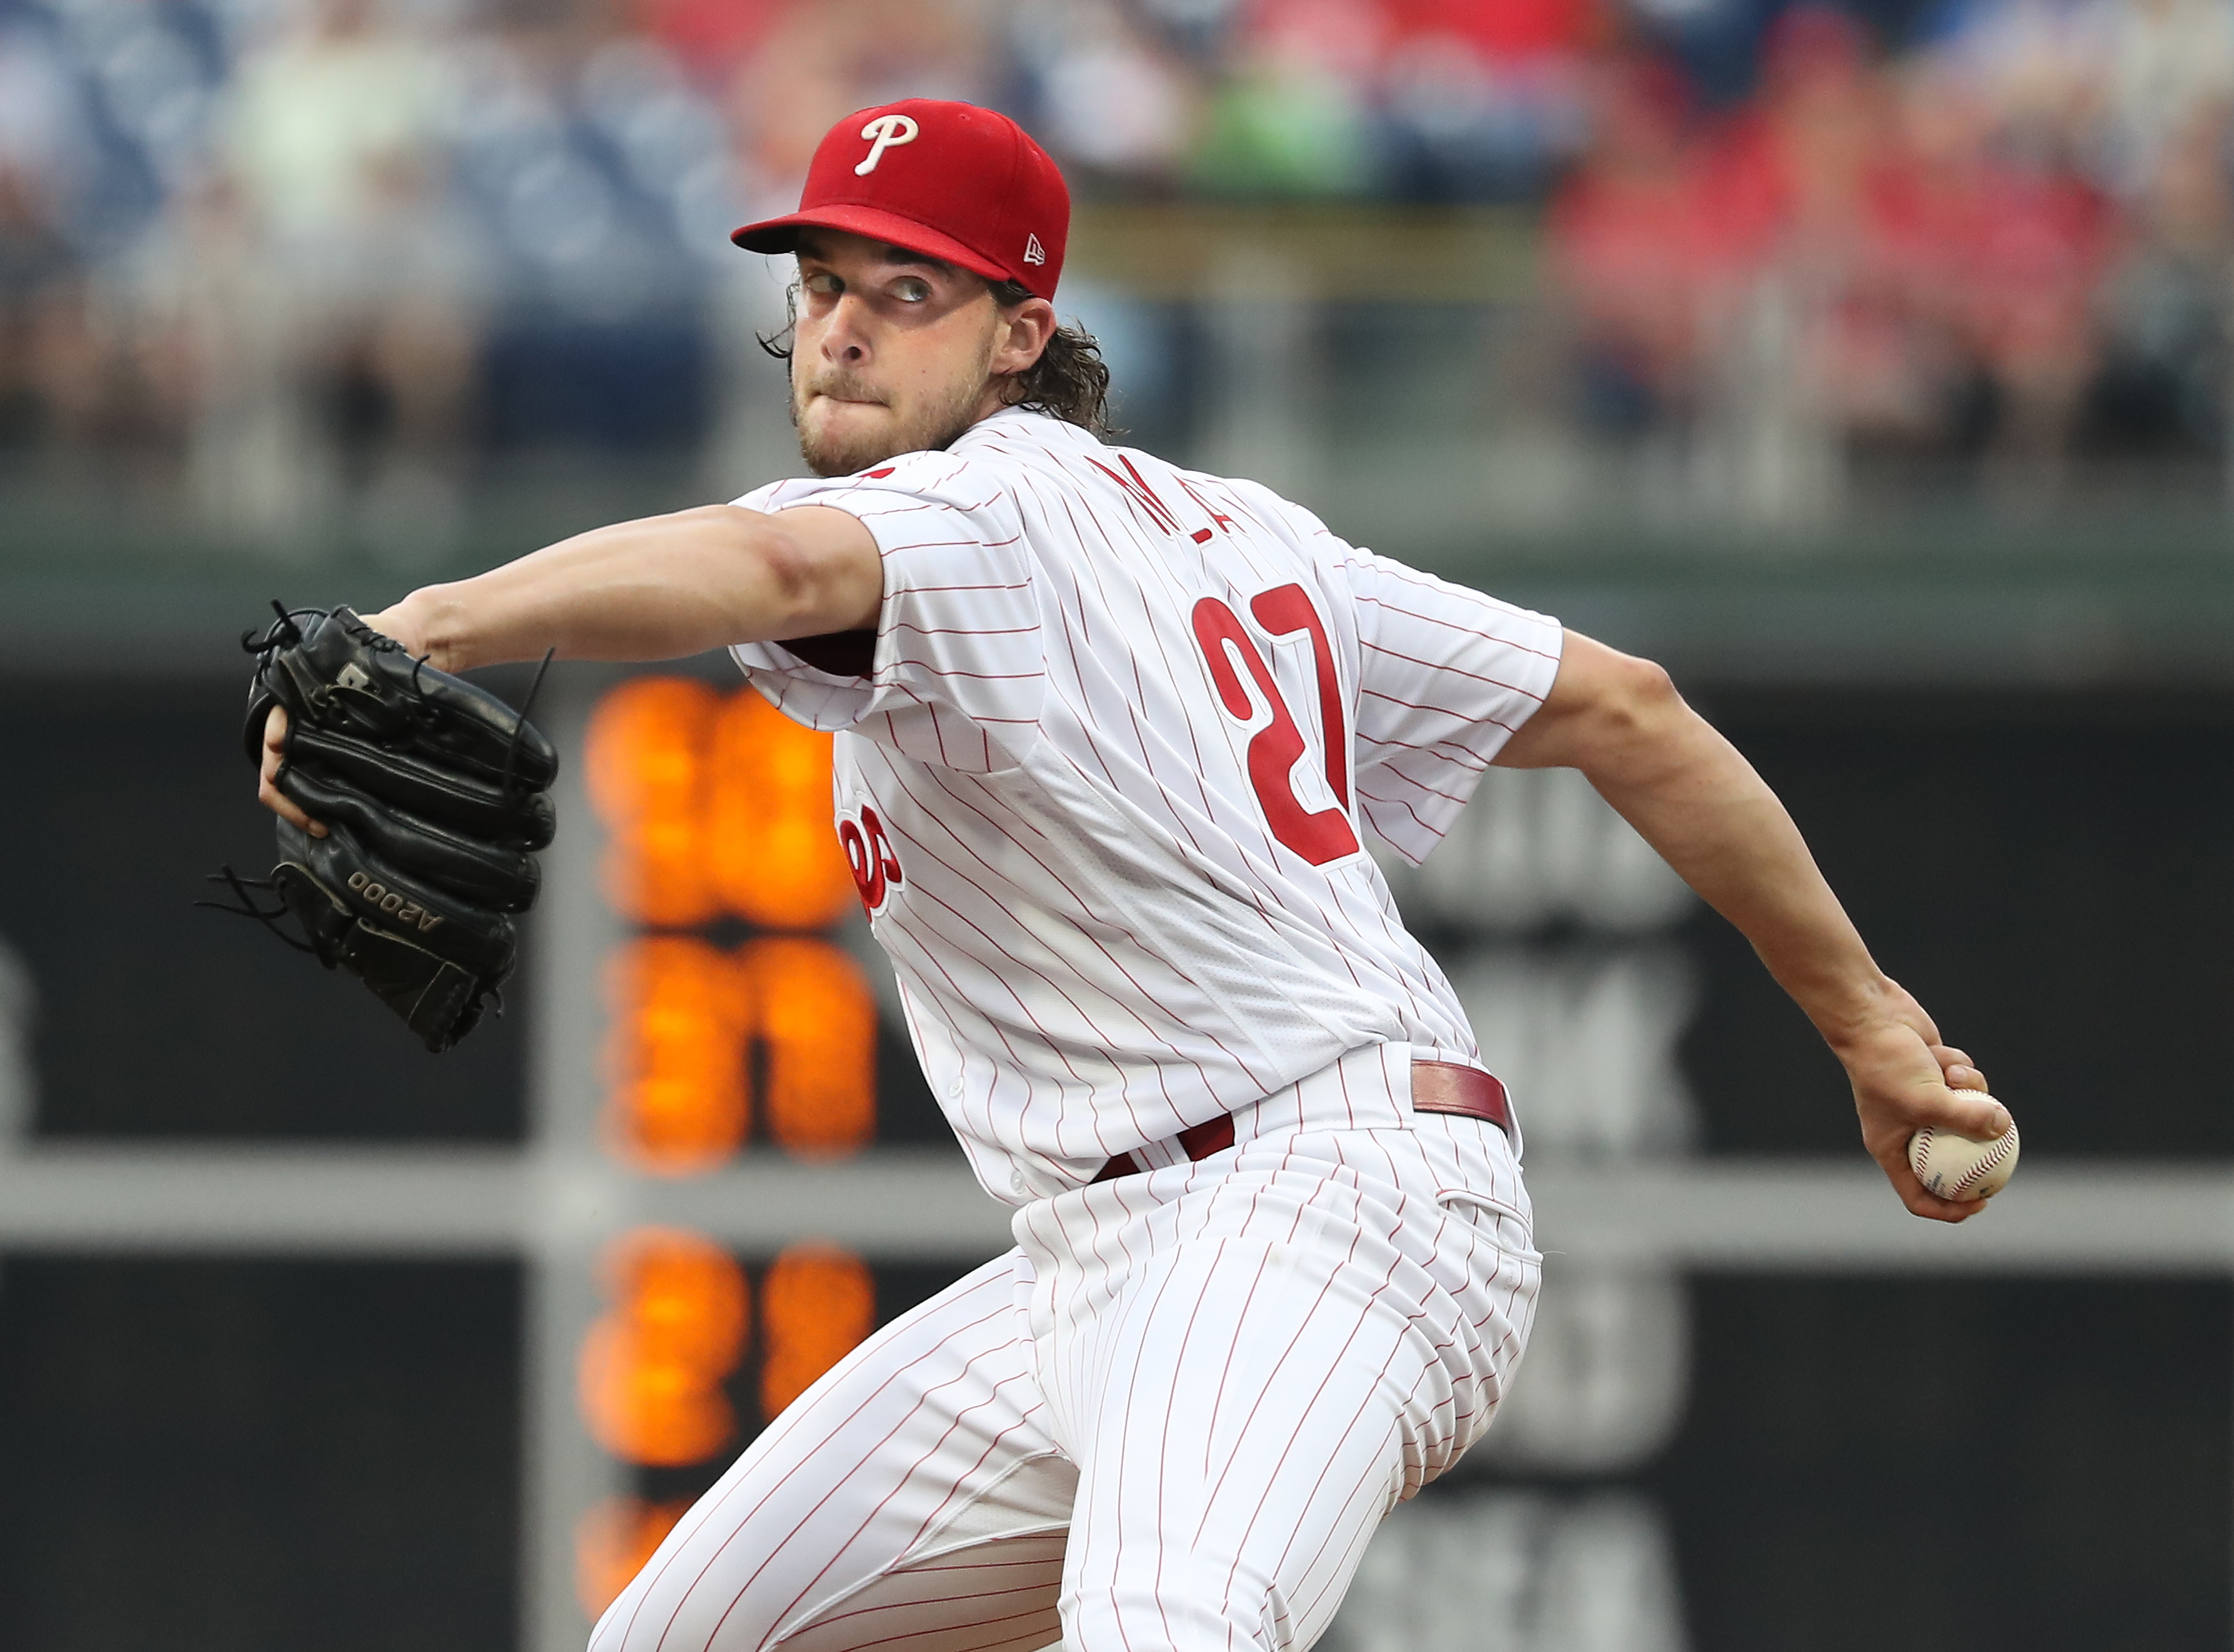 Aaron Nola likely will be paid a lot more in 2019.